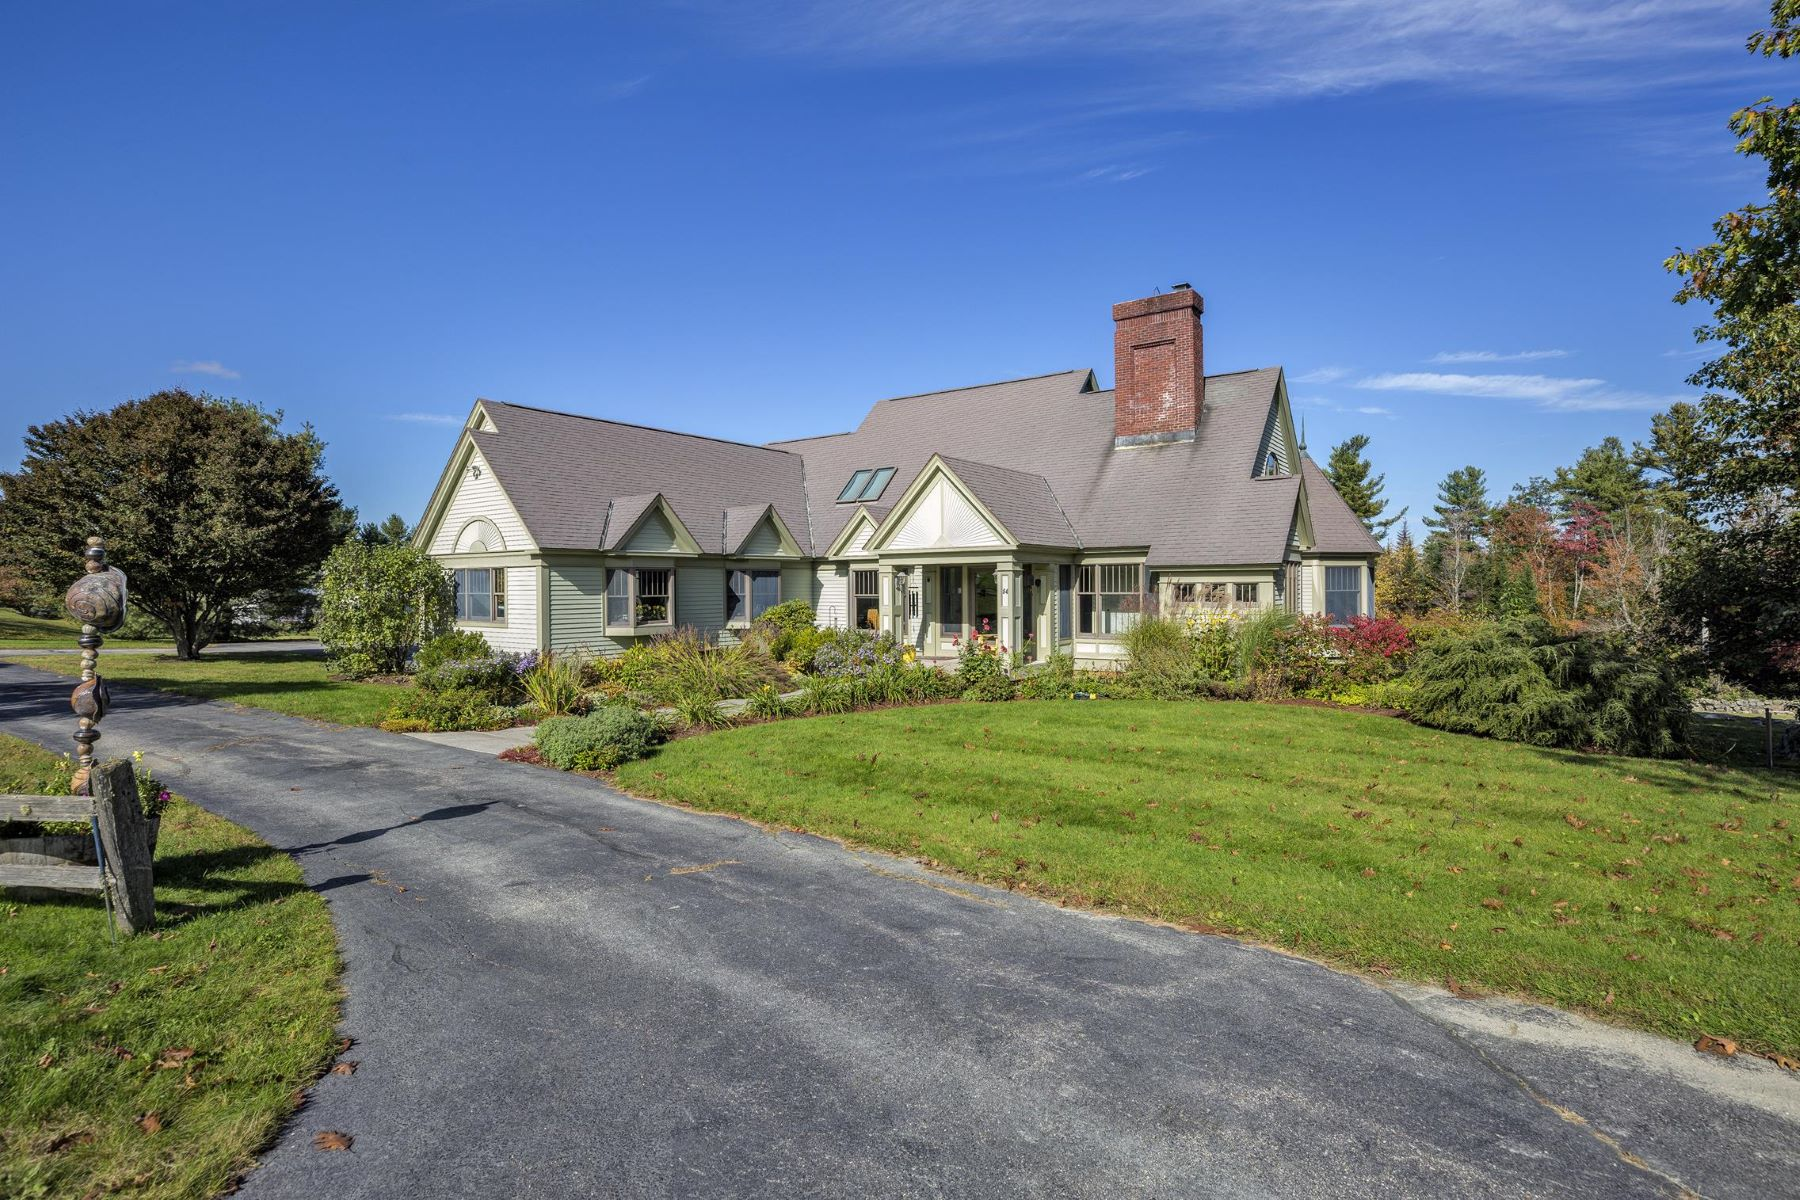 Single Family Homes for Active at 54 Todd Farm Lane New London, New Hampshire 03257 United States